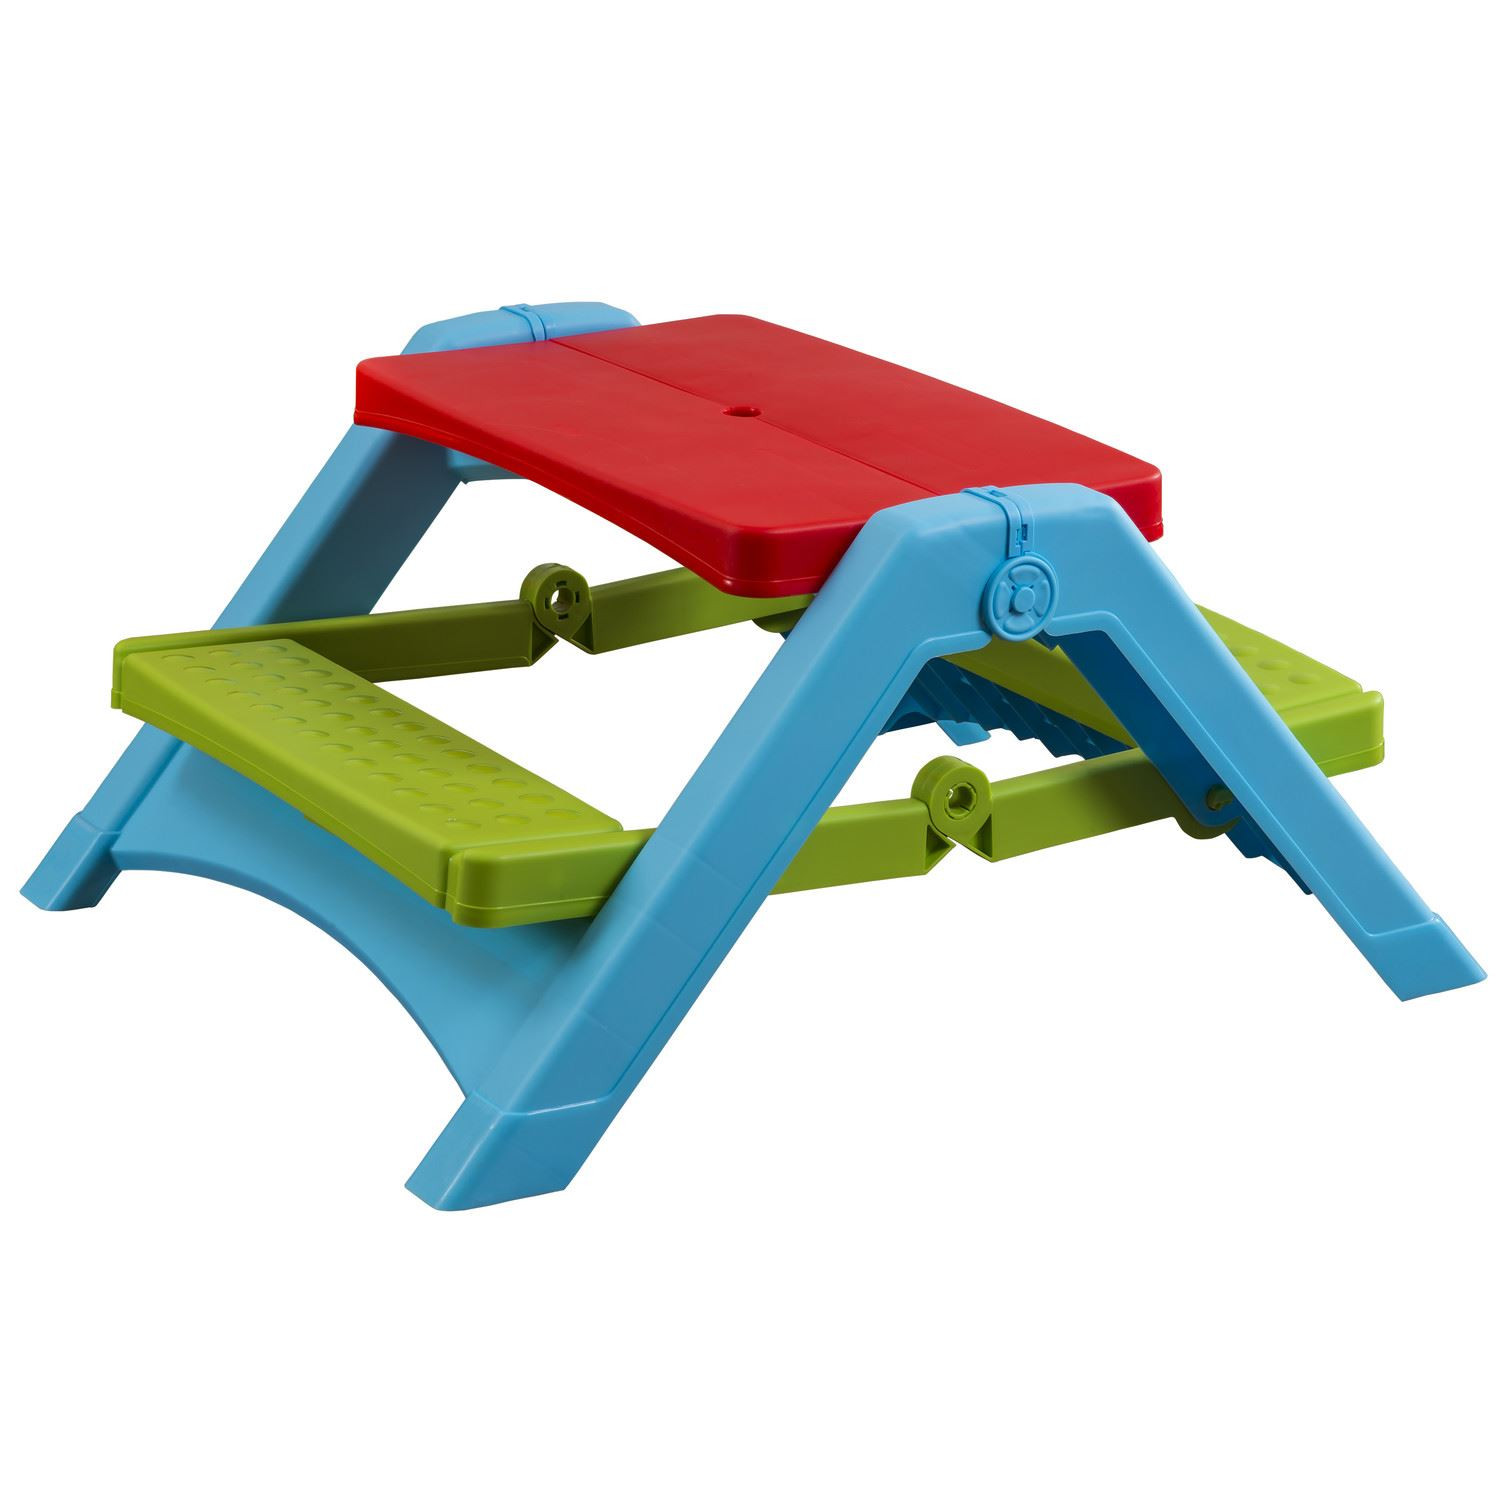 Kids Outdoor Table And Bench  Kids PICNIC Camping Outdoor Bench Garden Furniture Indoor